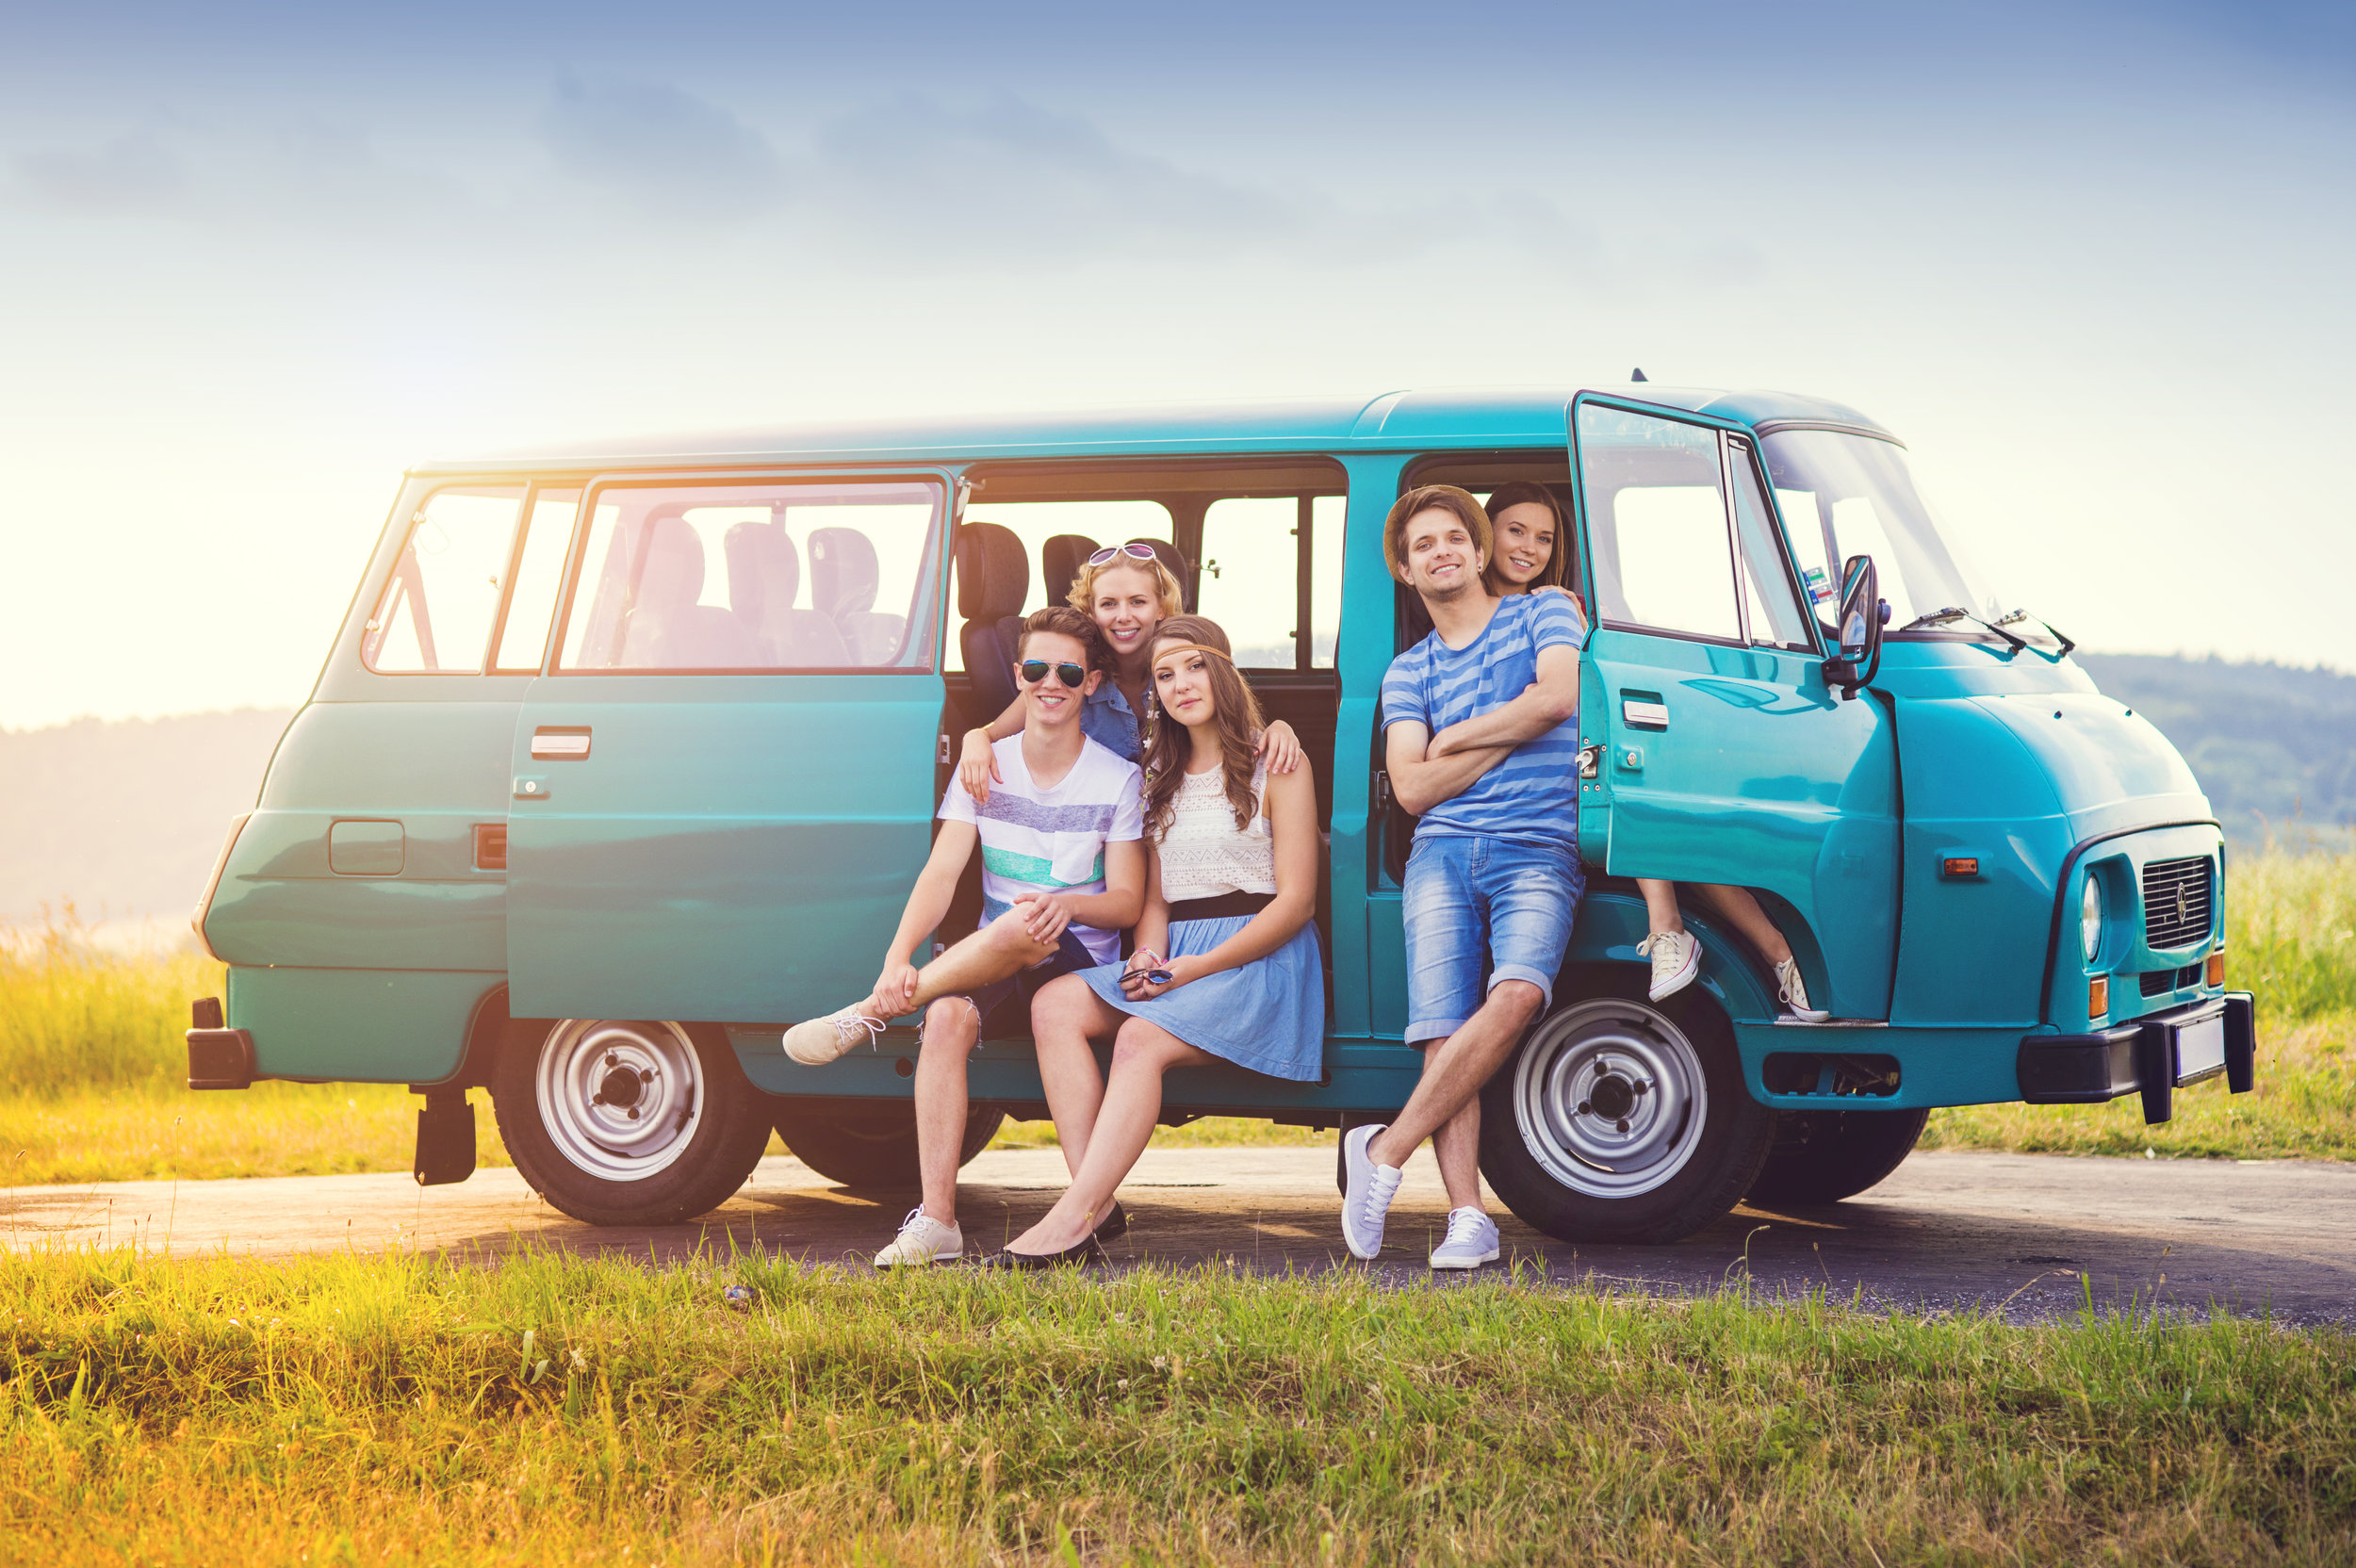 graphicstock-young-hipster-friends-on-road-trip-on-a-summer-day_B0kpr6p--.jpg